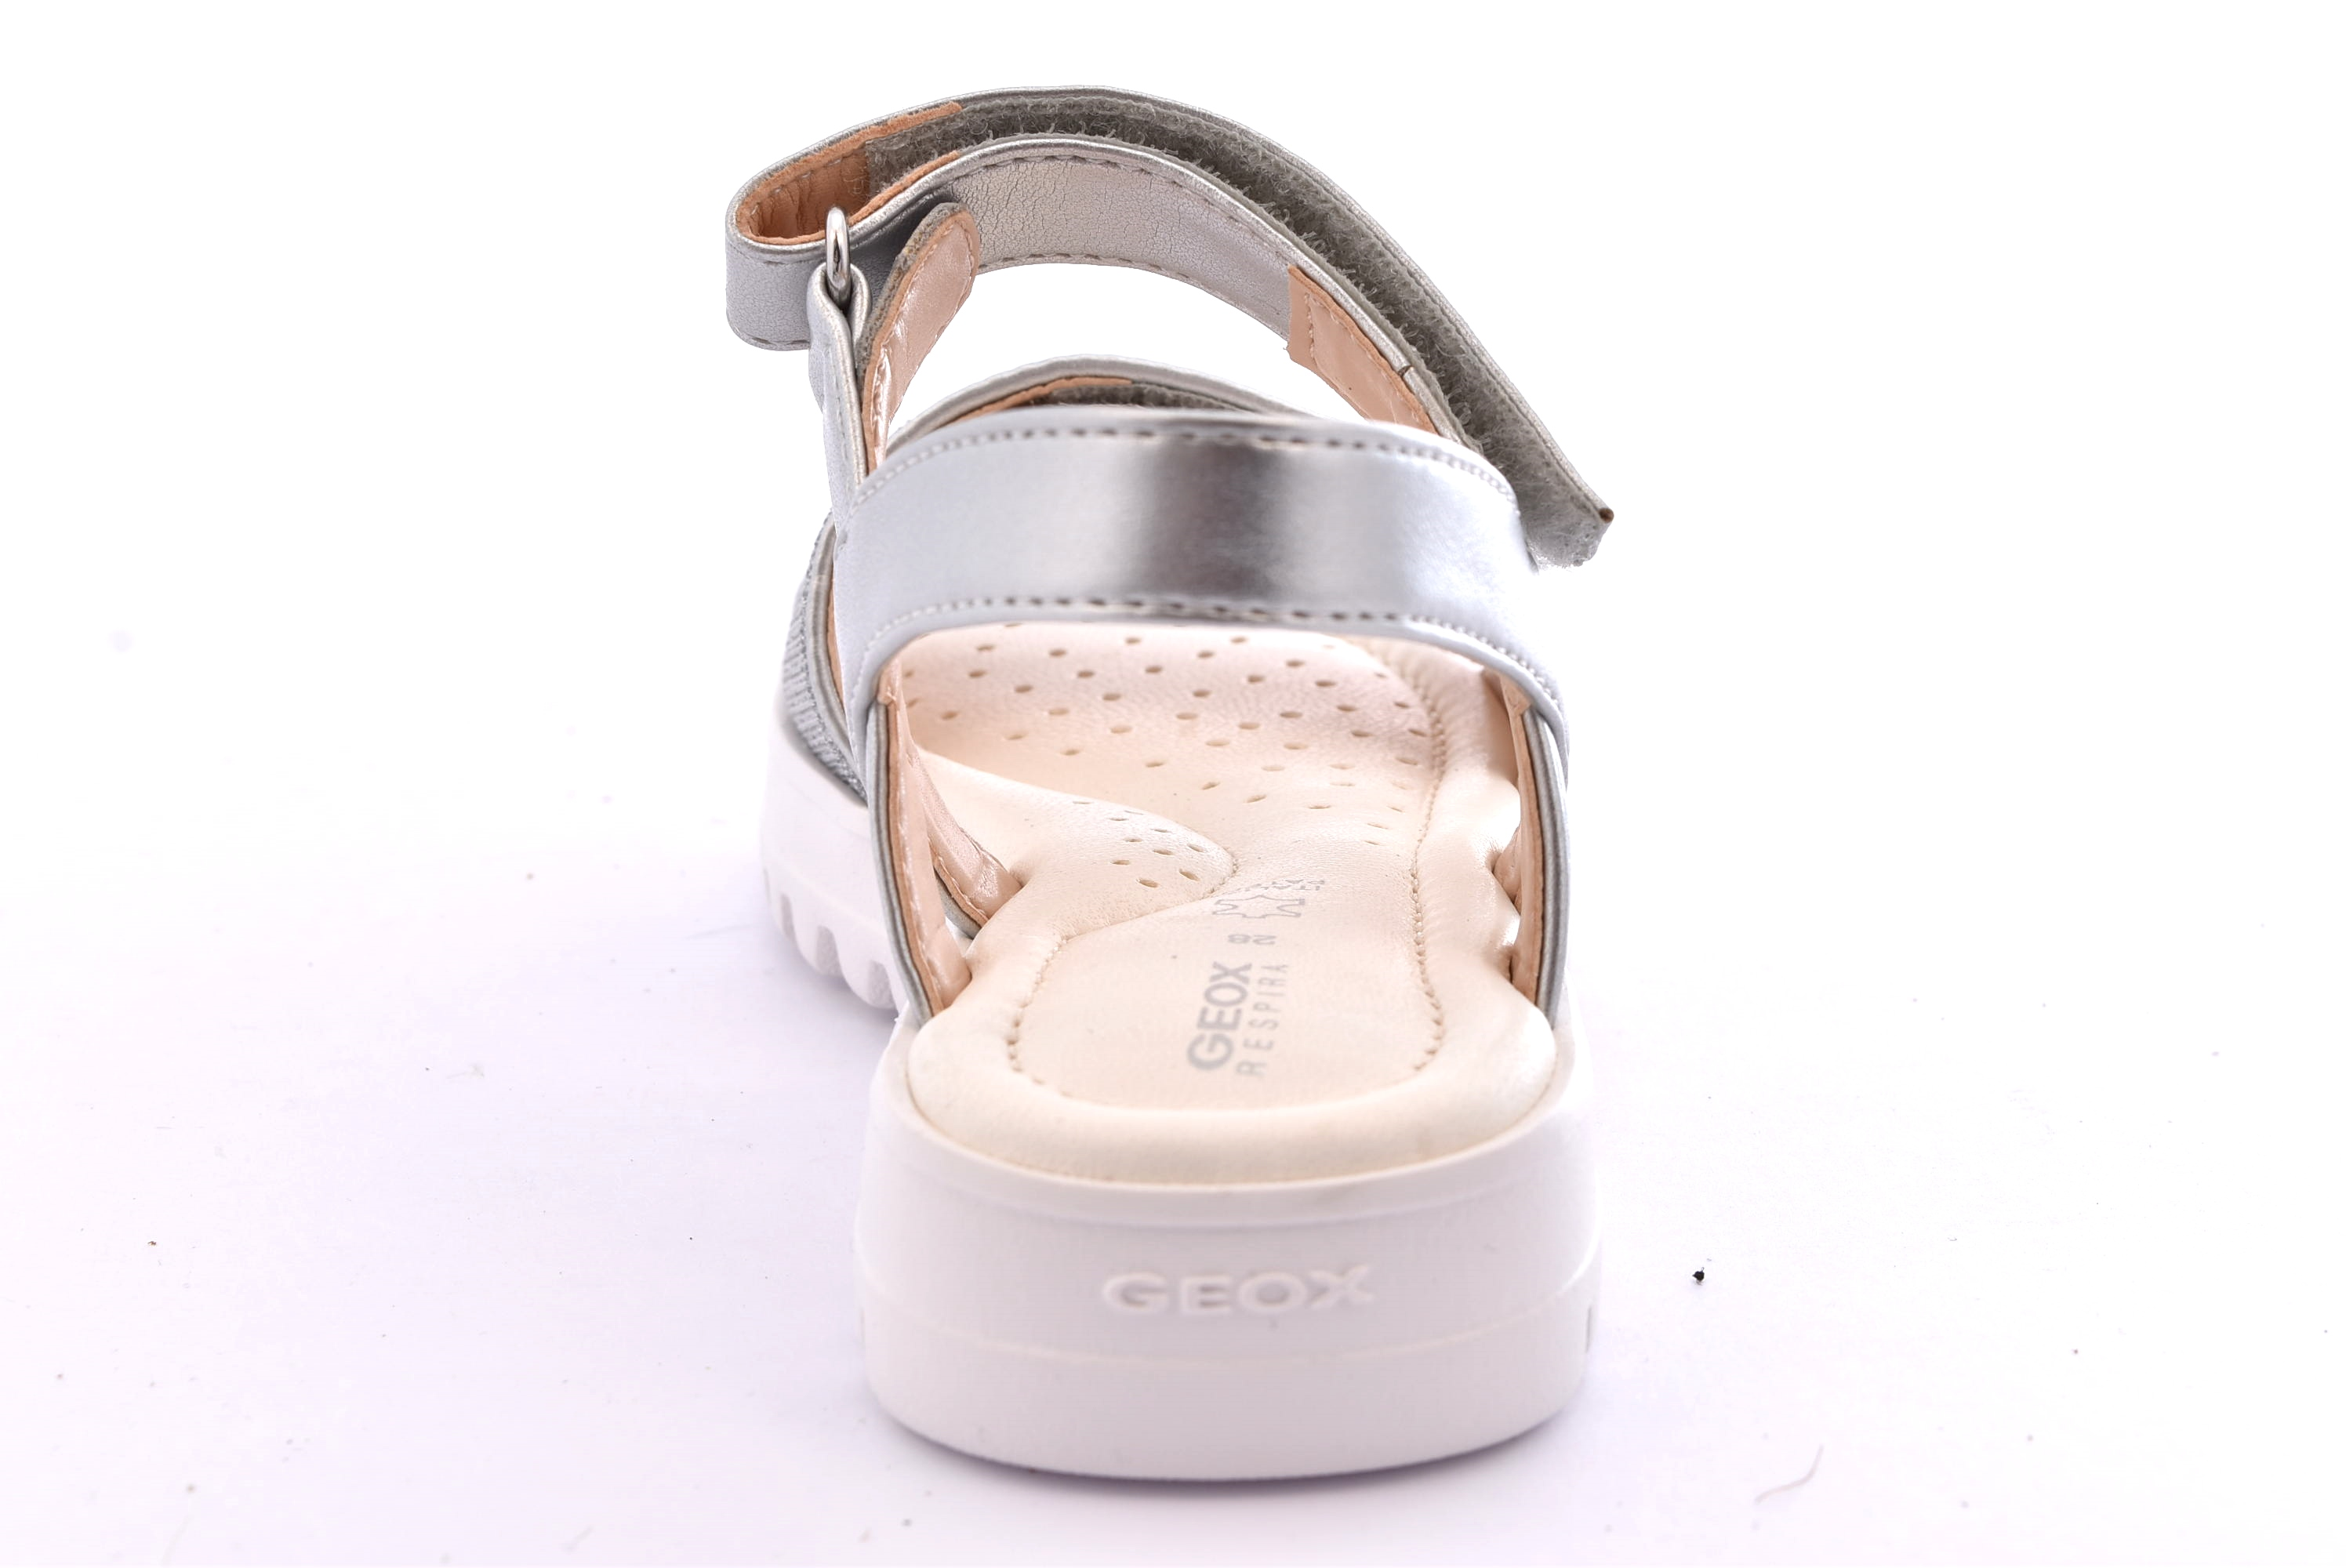 GEOX J826EG 0EWNF C1007 CORALIE ARGENTO | shoesmyfriends.it